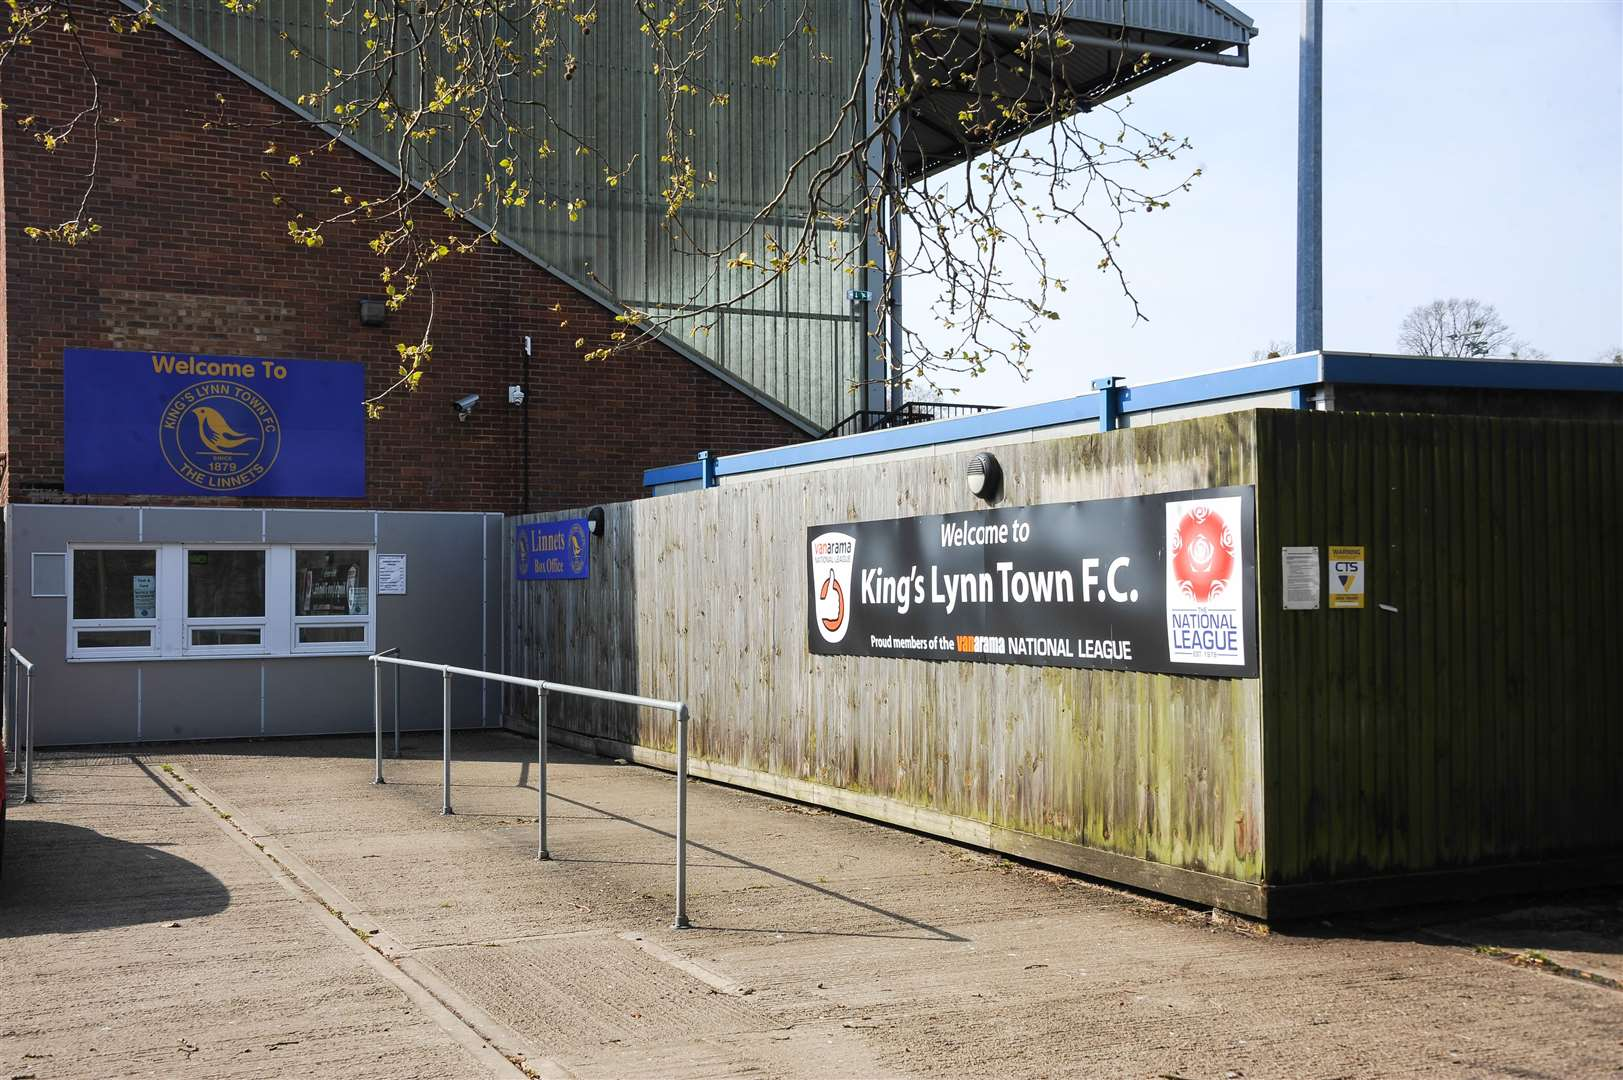 Fans will not be able to buy tickets in person for King's Lynn Town's match with Torquay United next weekend.